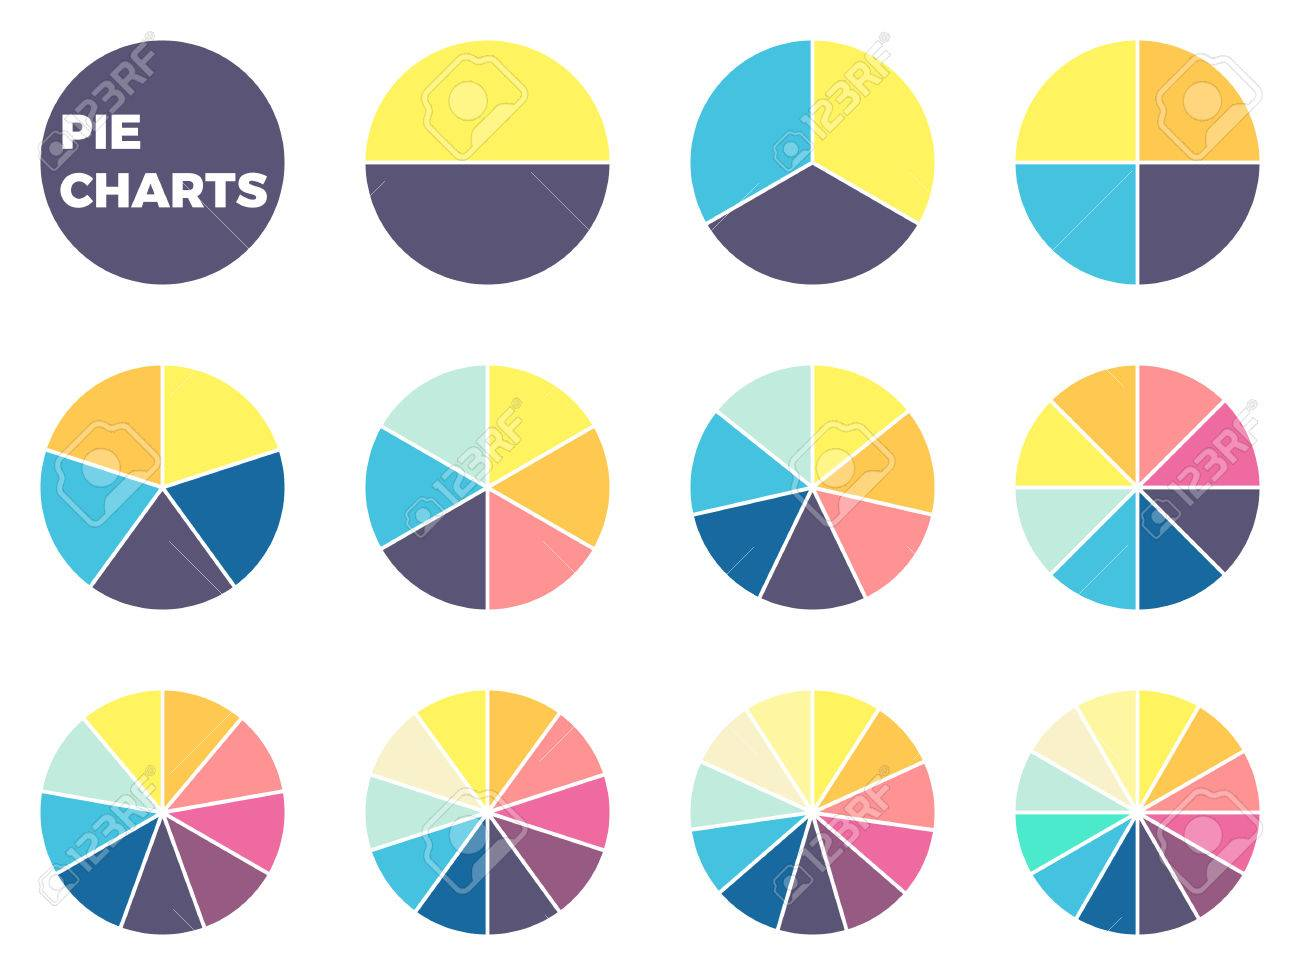 simple pie charts for infographics. diagrams with 1 - 12 parts